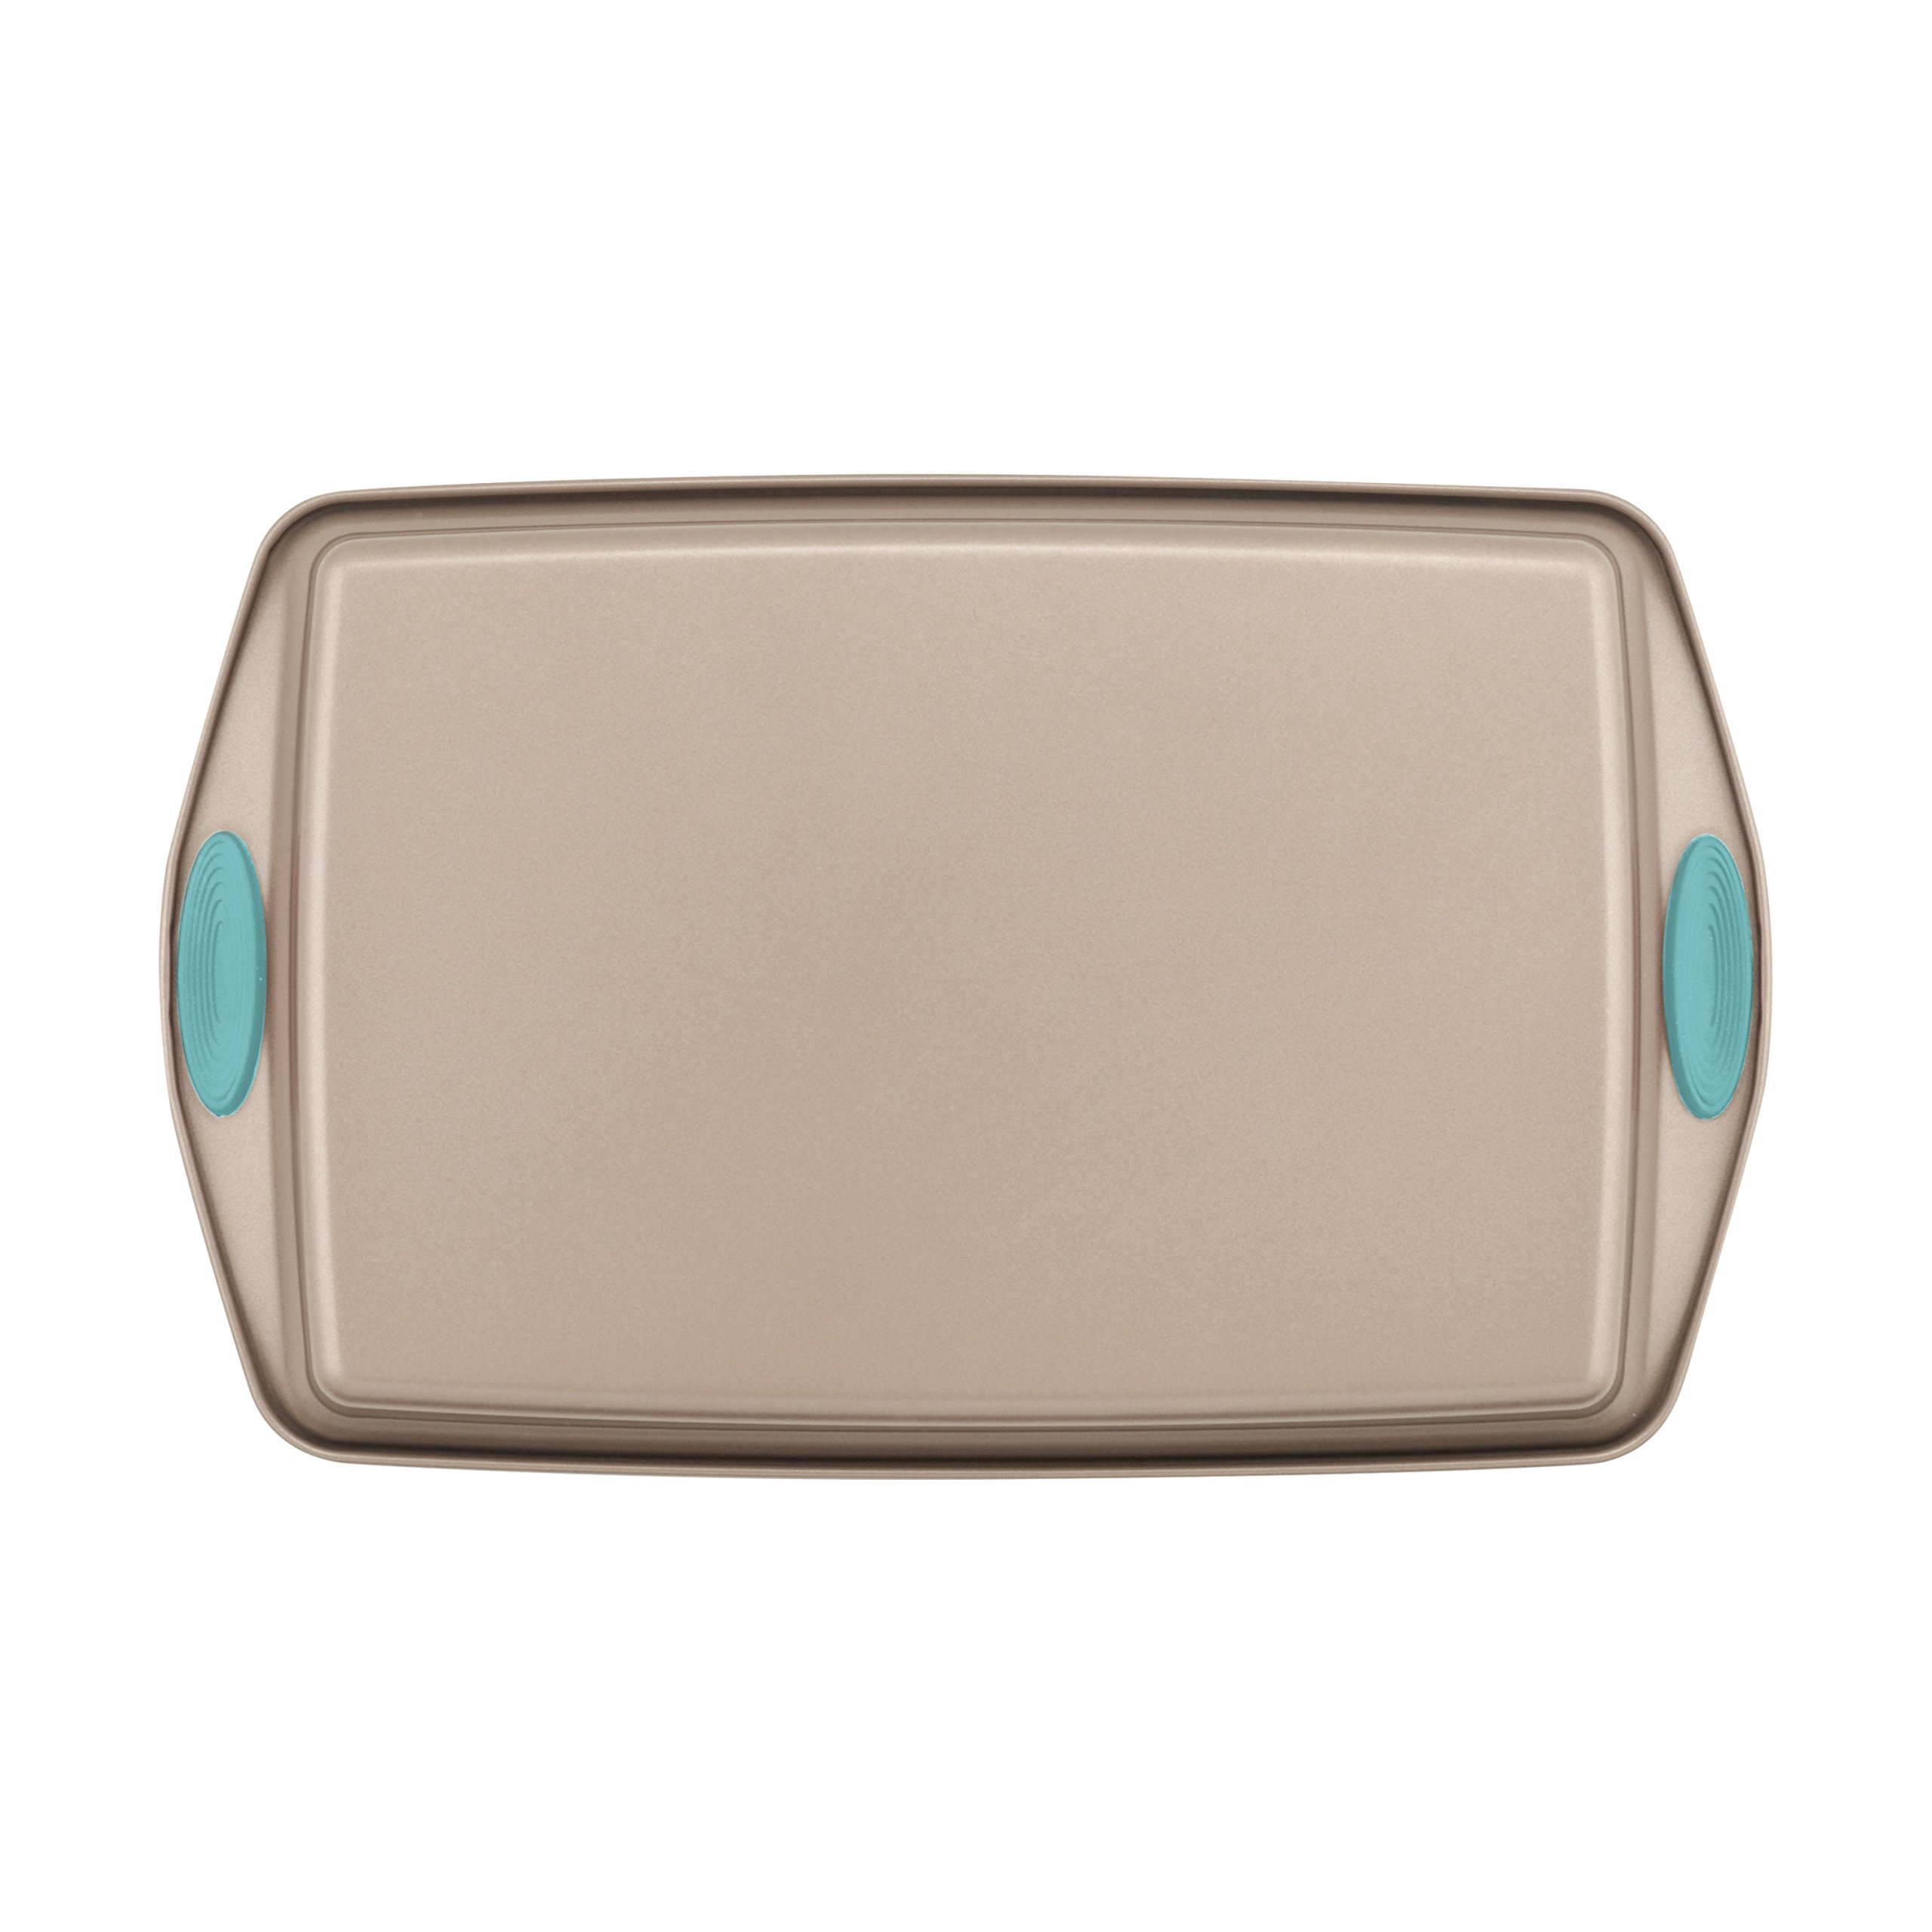 Rachael Ray Nonstick Bakeware 5-Piece Set, Latte Brown with Agave Blue Handle Grips by Rachael Ray (Image #3)